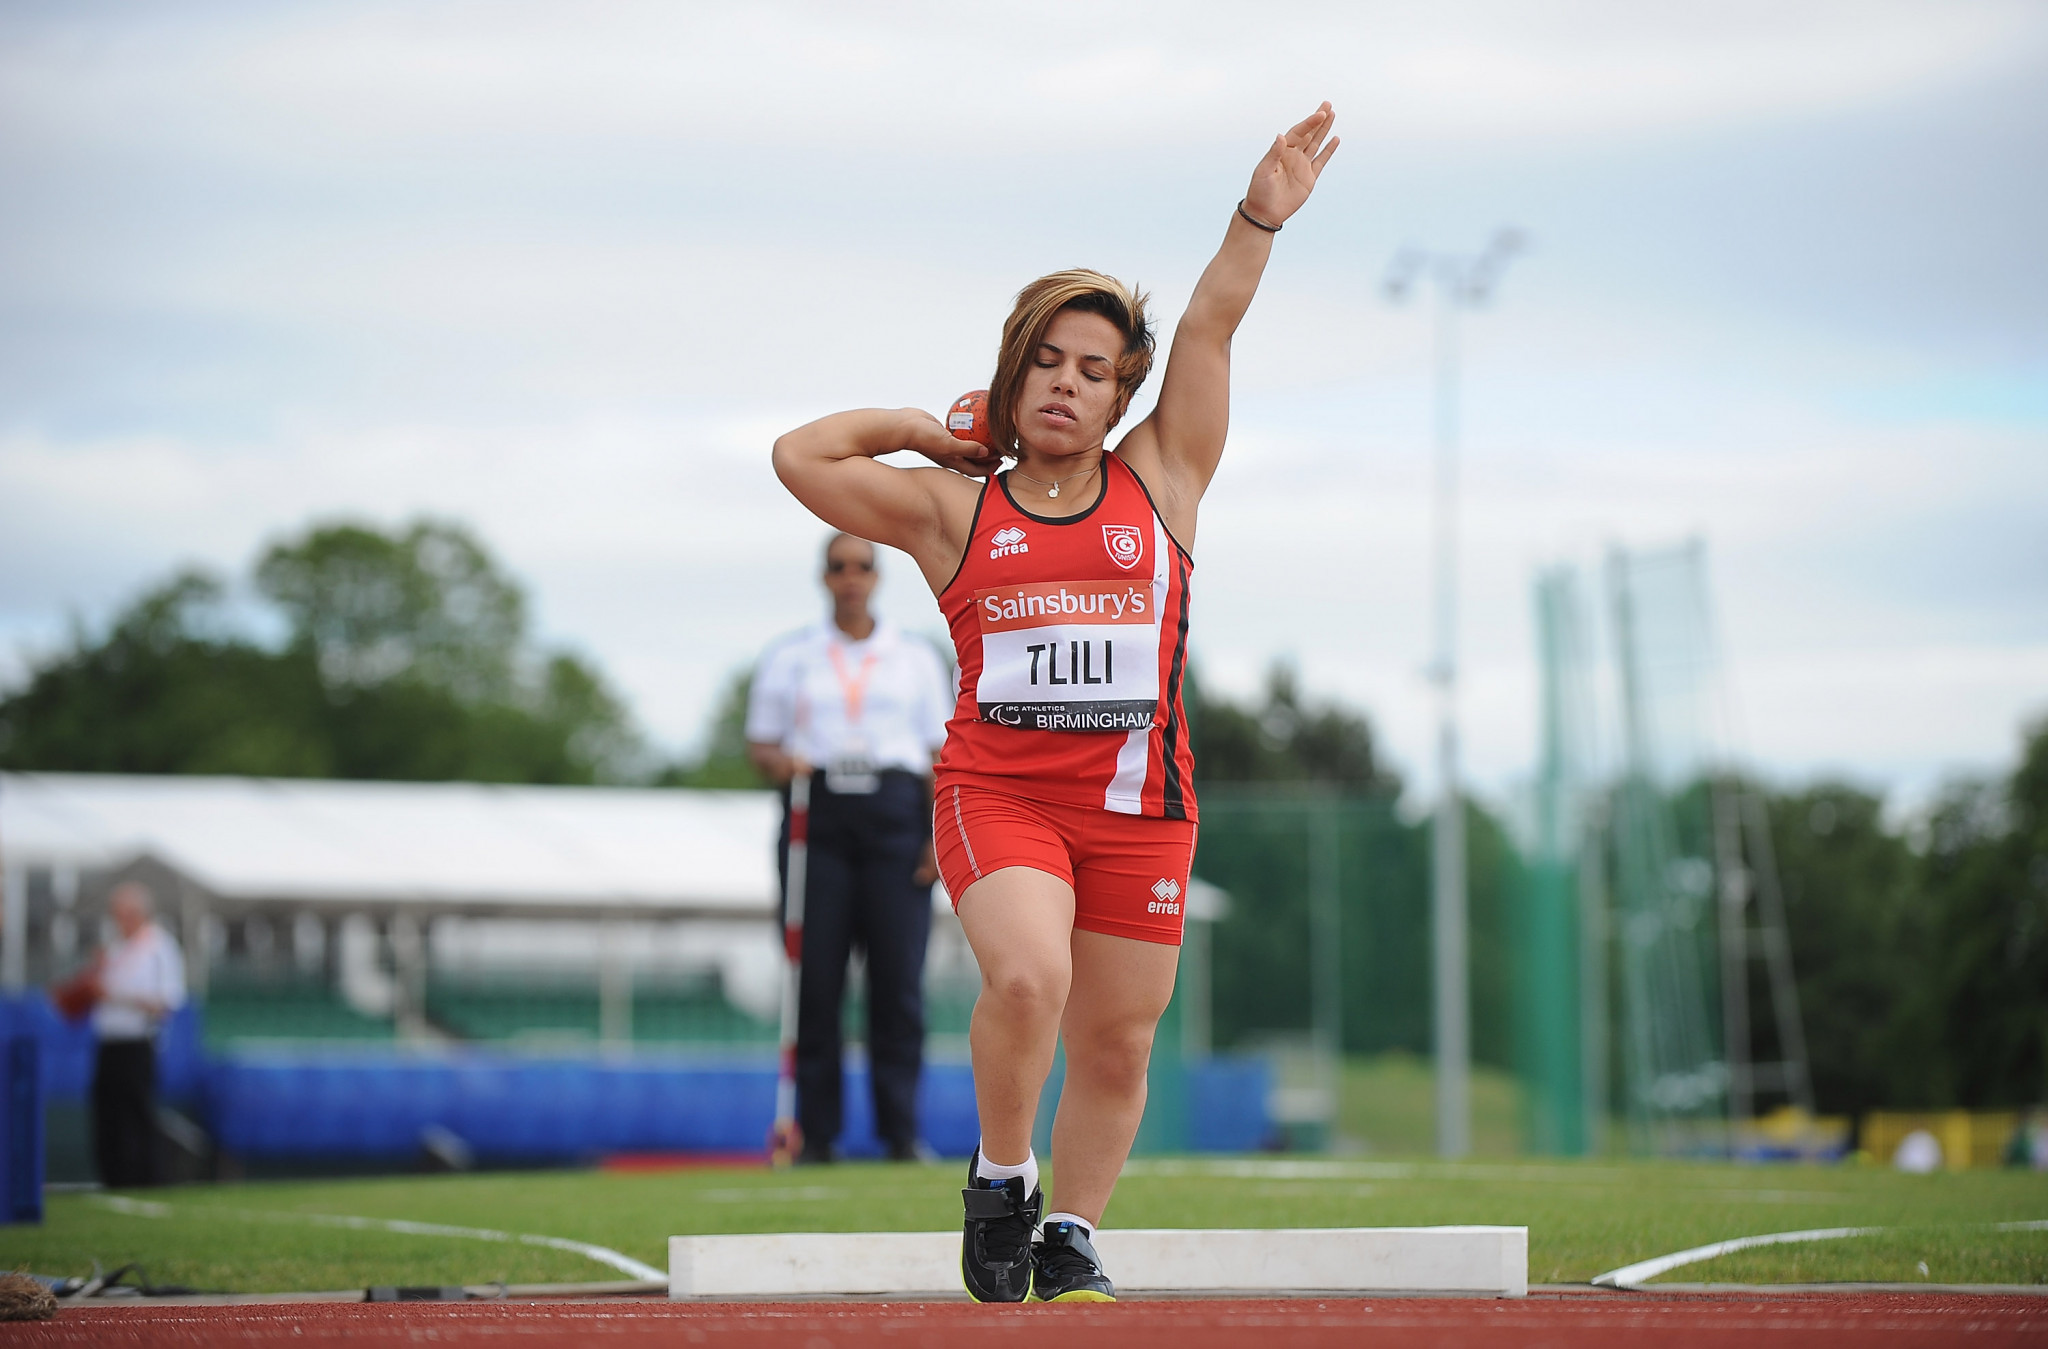 Raoua Tlili is one of three Tunisian throwers set to participate in the women's shot put F41 at the World Para Athletics Grand Prix in Jesolo ©Getty Images